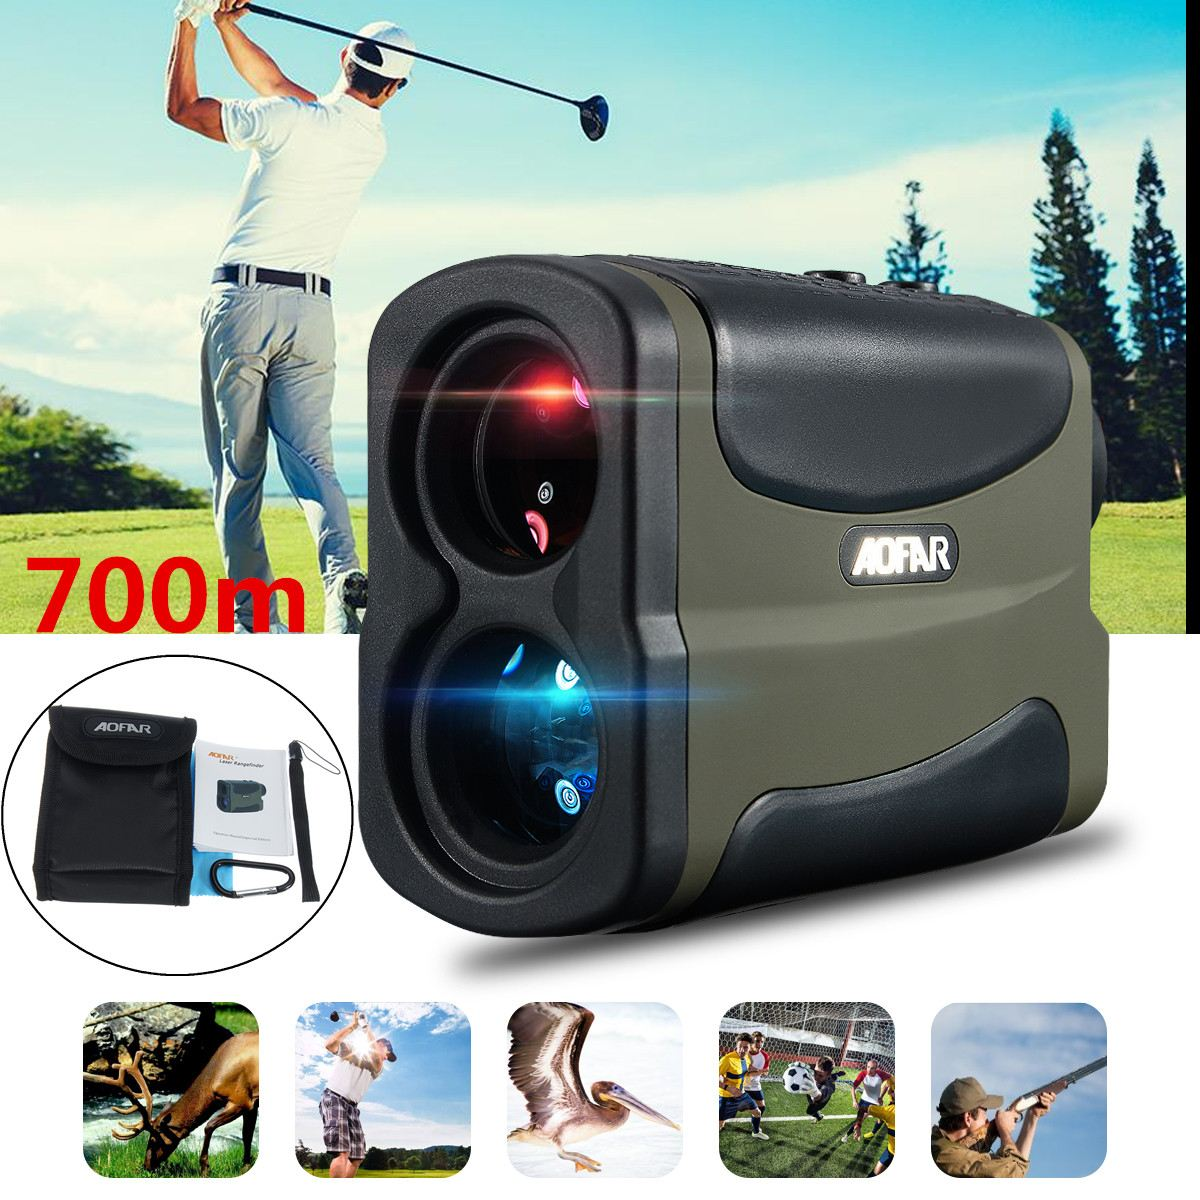 700M Multifunction 6x Laser Range Finder Telescope Angle Hunting Distance Golf Rangefinder Golf